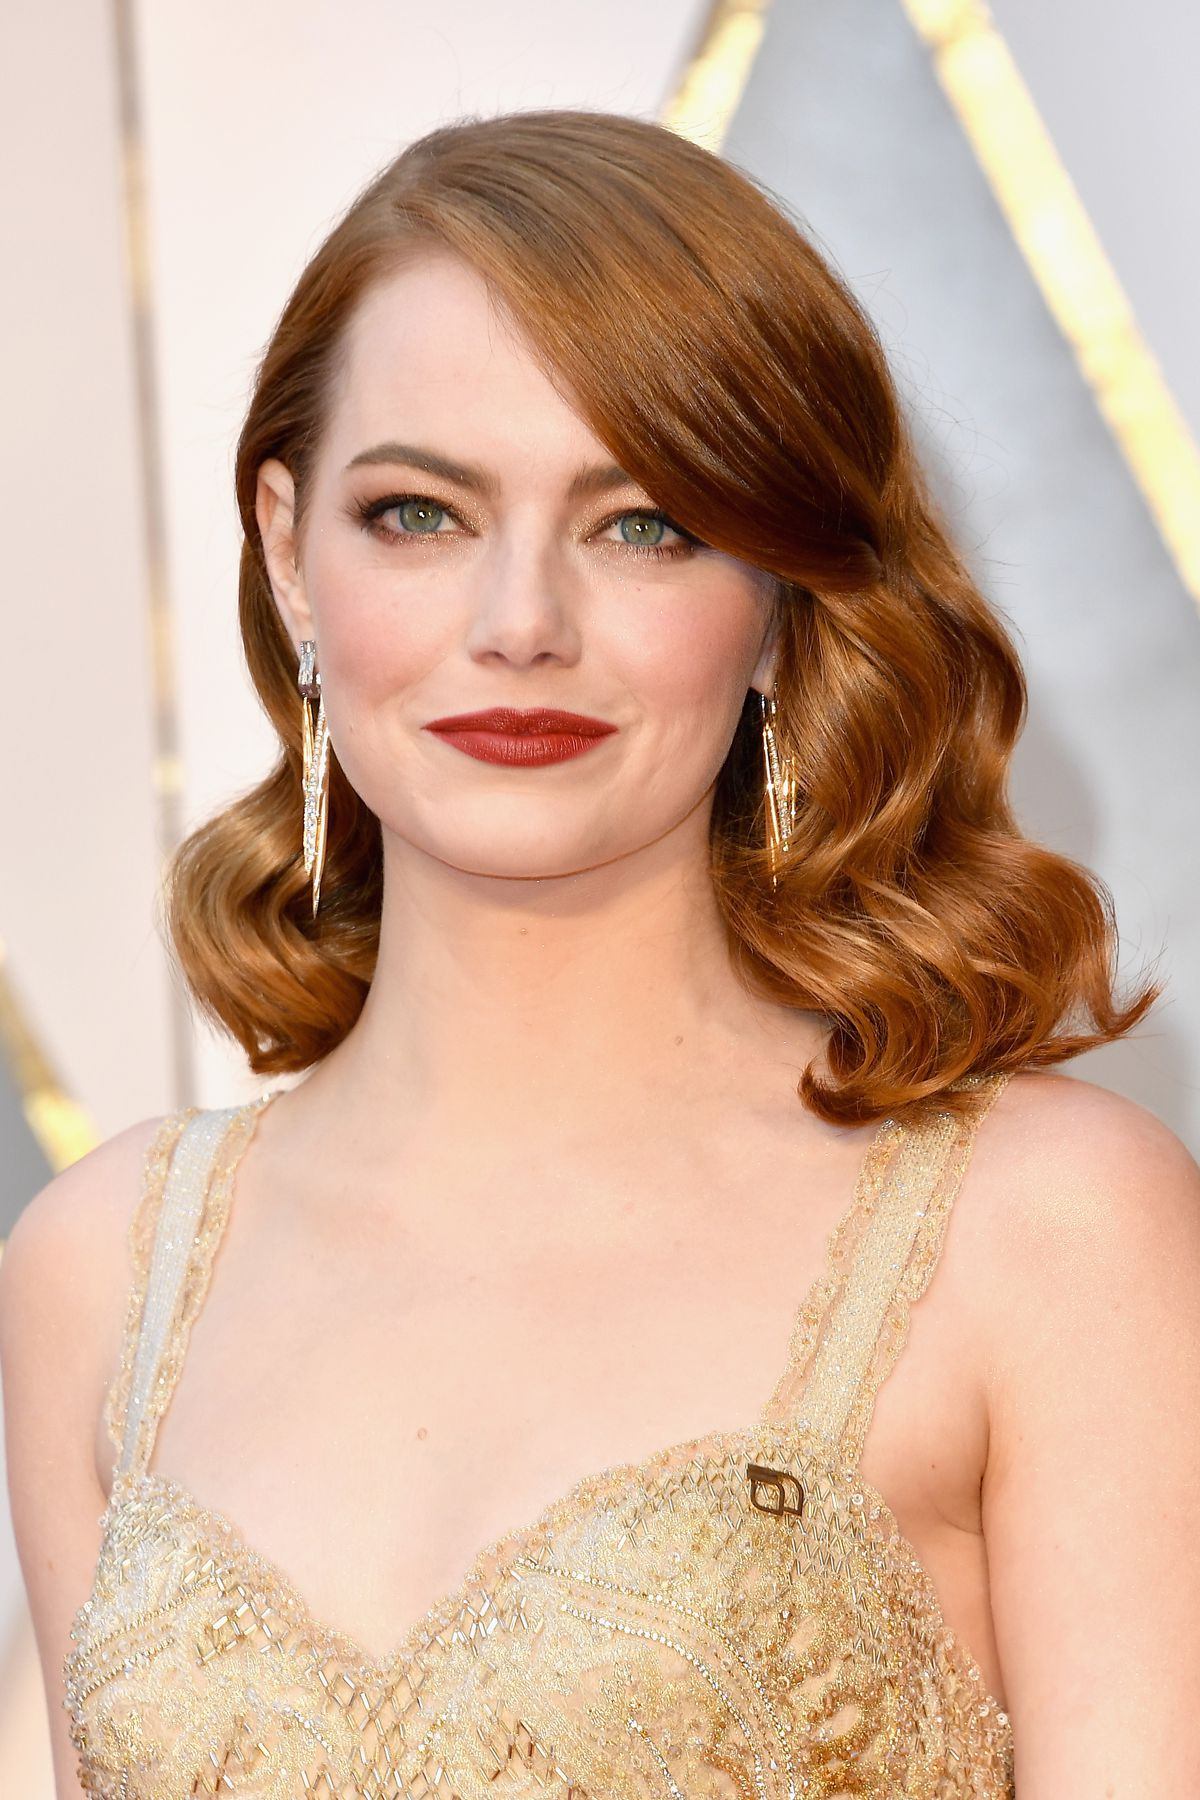 Emma Stone wears a Planned Parenthood pin at the 2017 Oscars.